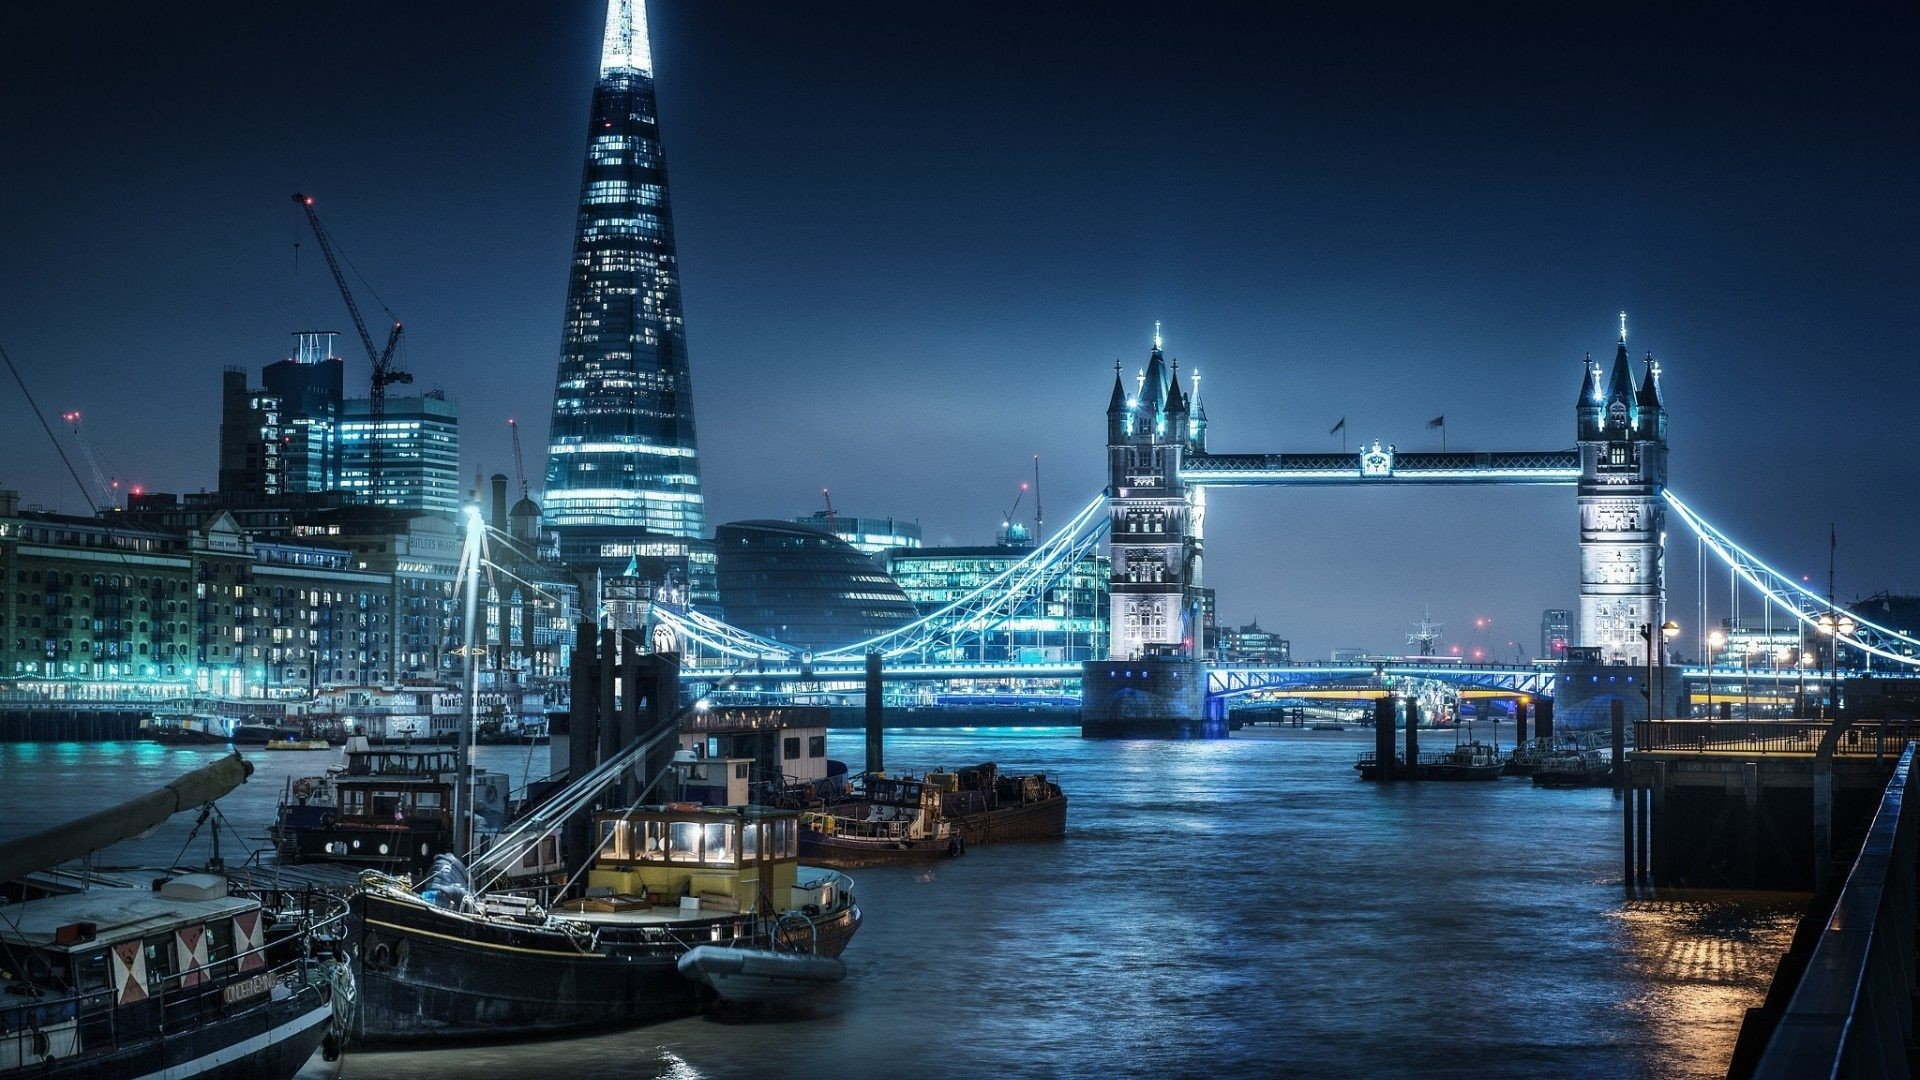 London City At Night Hd 115804 Hd Wallpaper Backgrounds Download